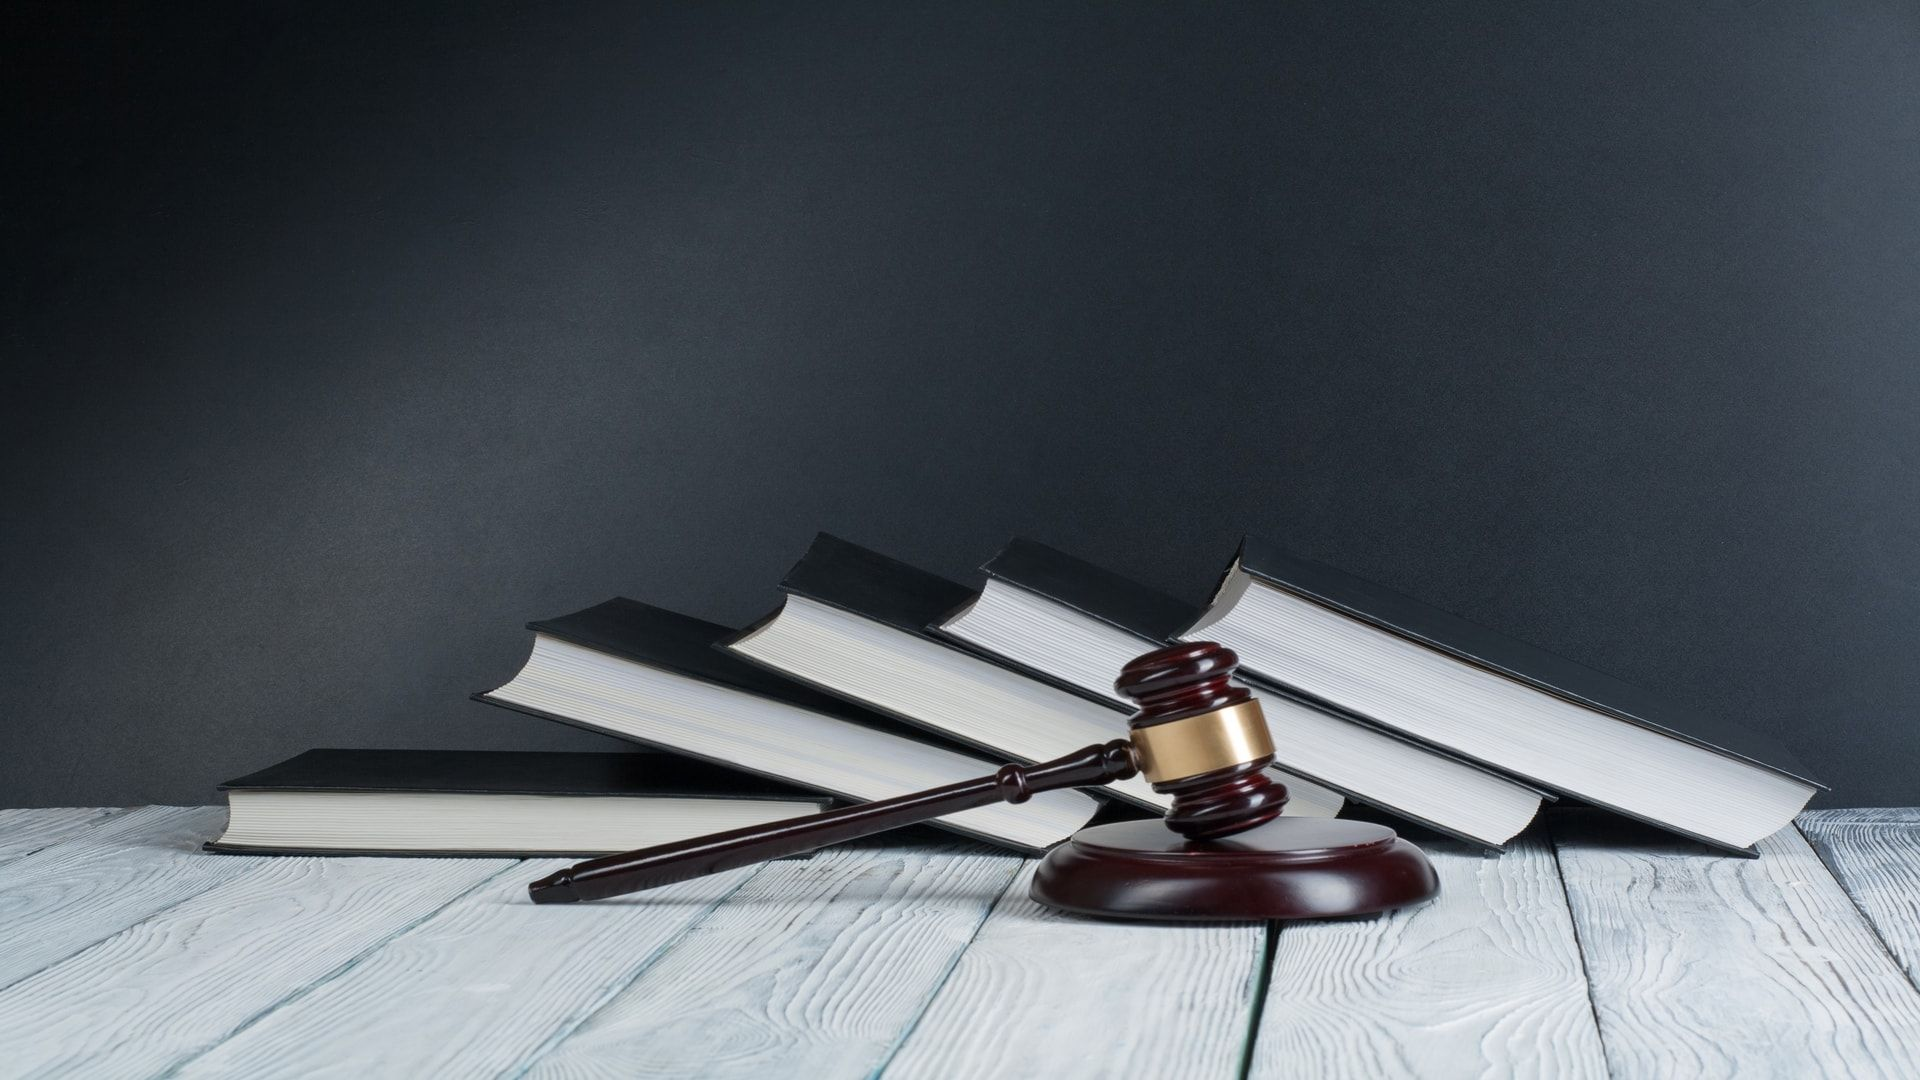 The Questions You Should Always Ask a Criminal Defense Lawyer